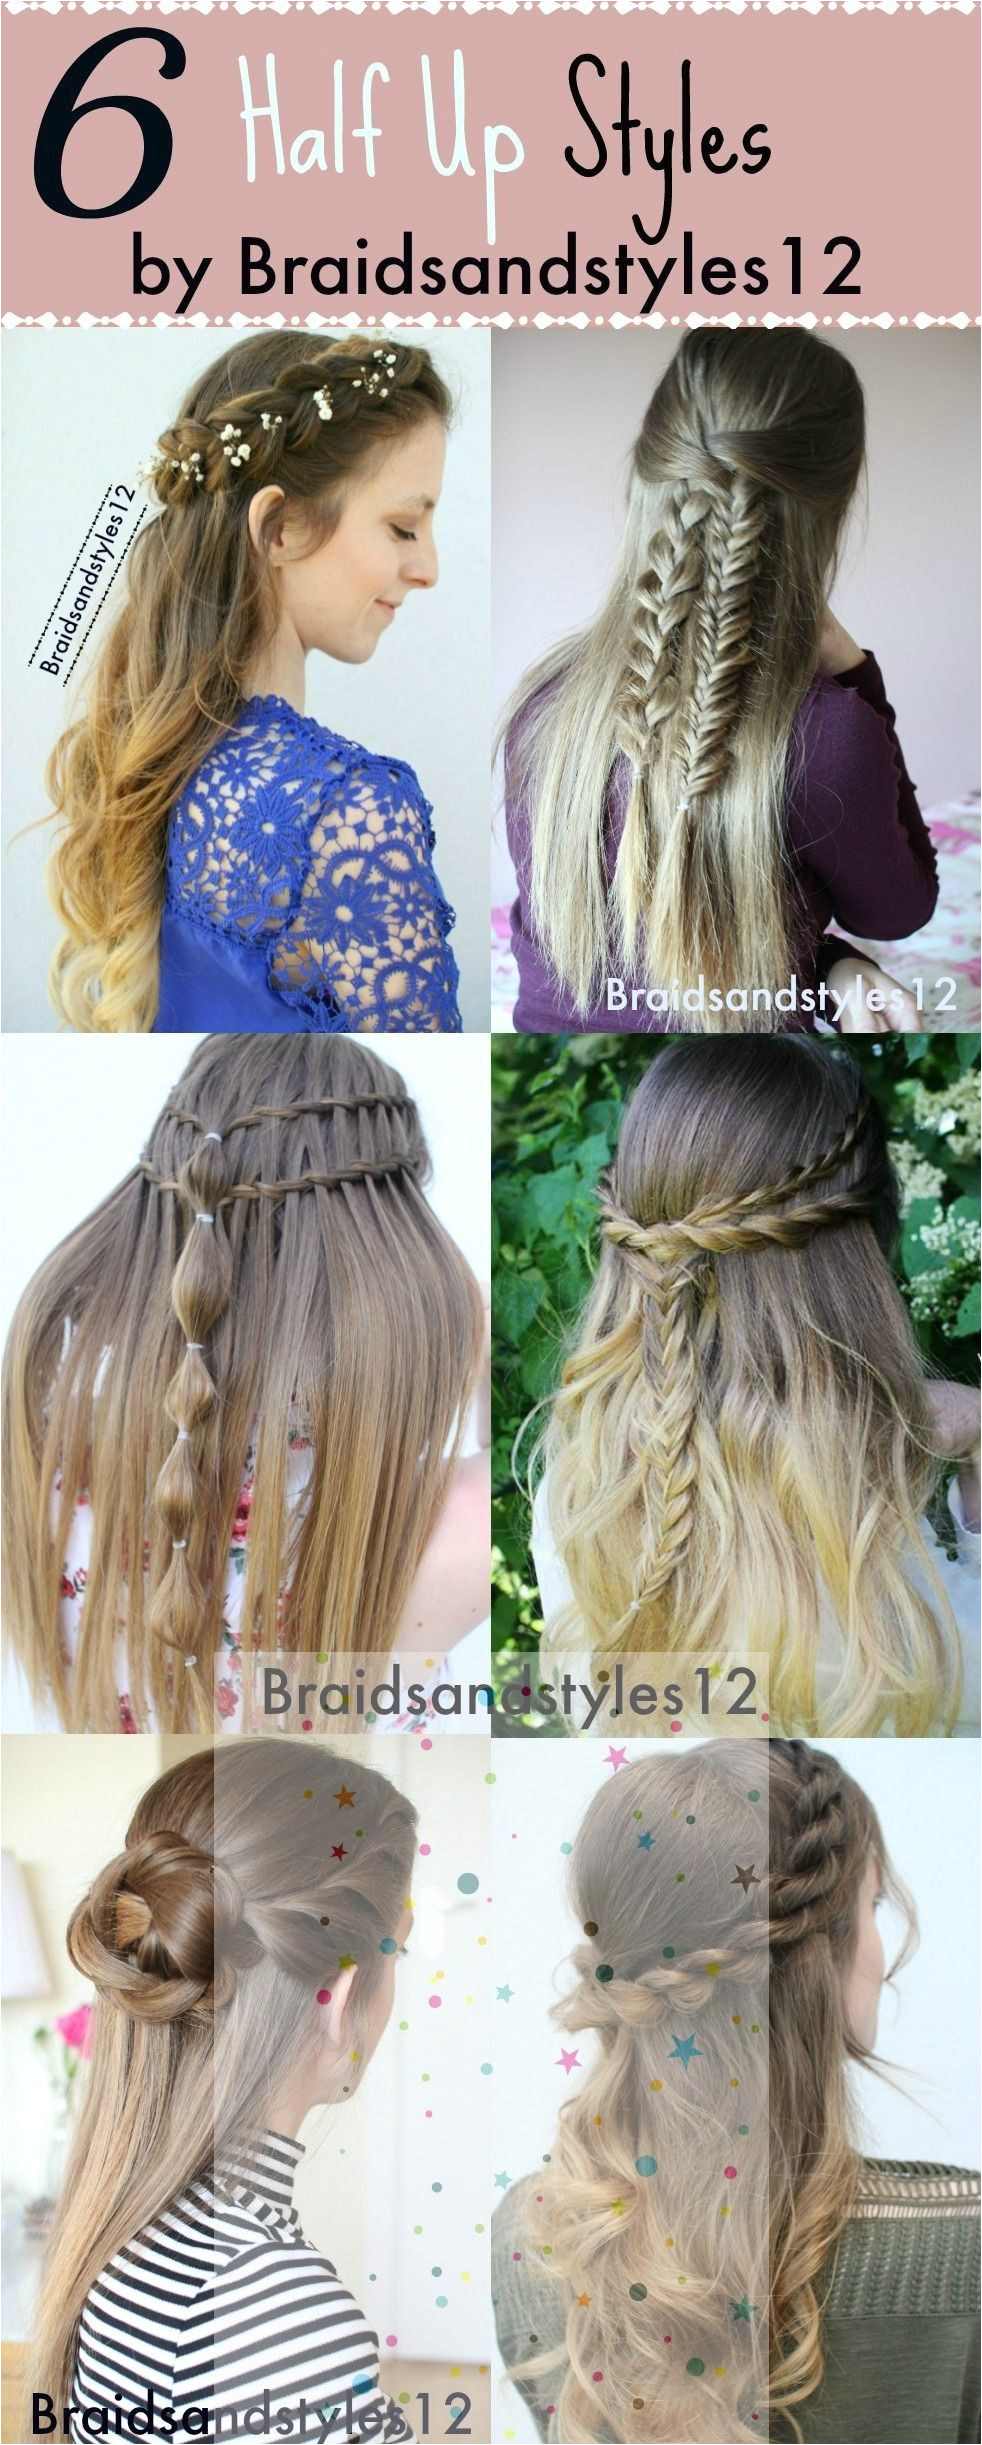 3 Fabulous Tips Fringe Hairstyles Parted women hairstyles with bangs medium Boho Hairstyles Bridesmaid classy updos hairstyle